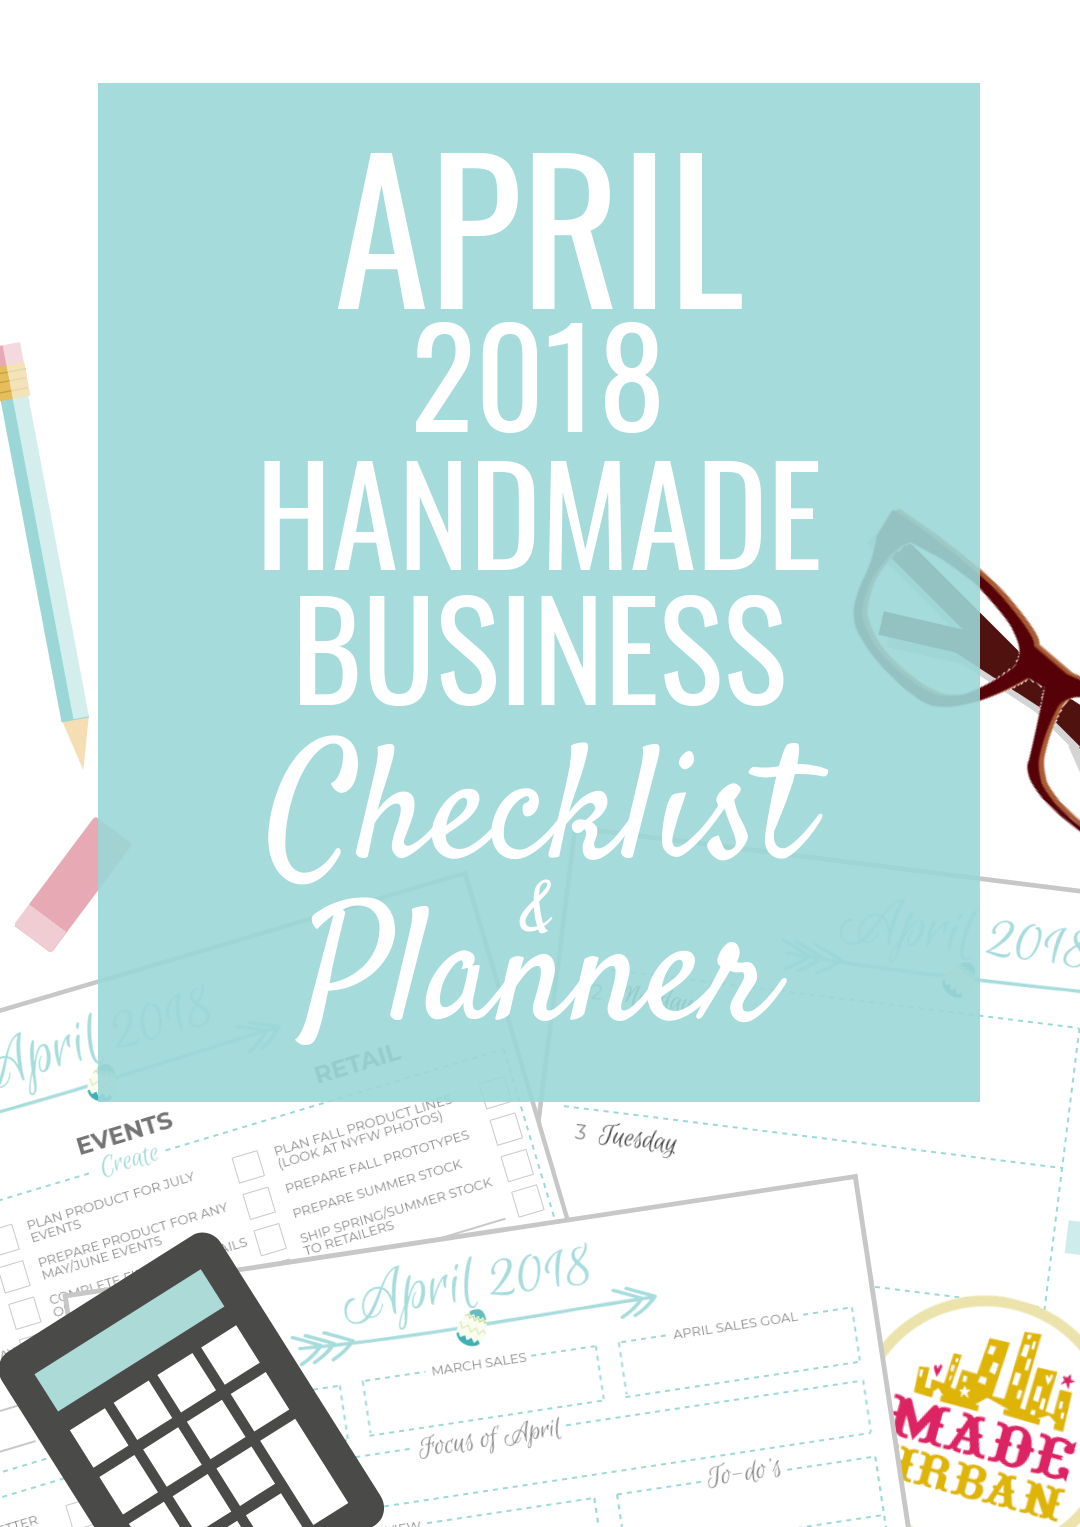 Spring has arrived & it's time for a productive April, to prepare for May & plan what June will look like. Here's how plus a checklist & planner.